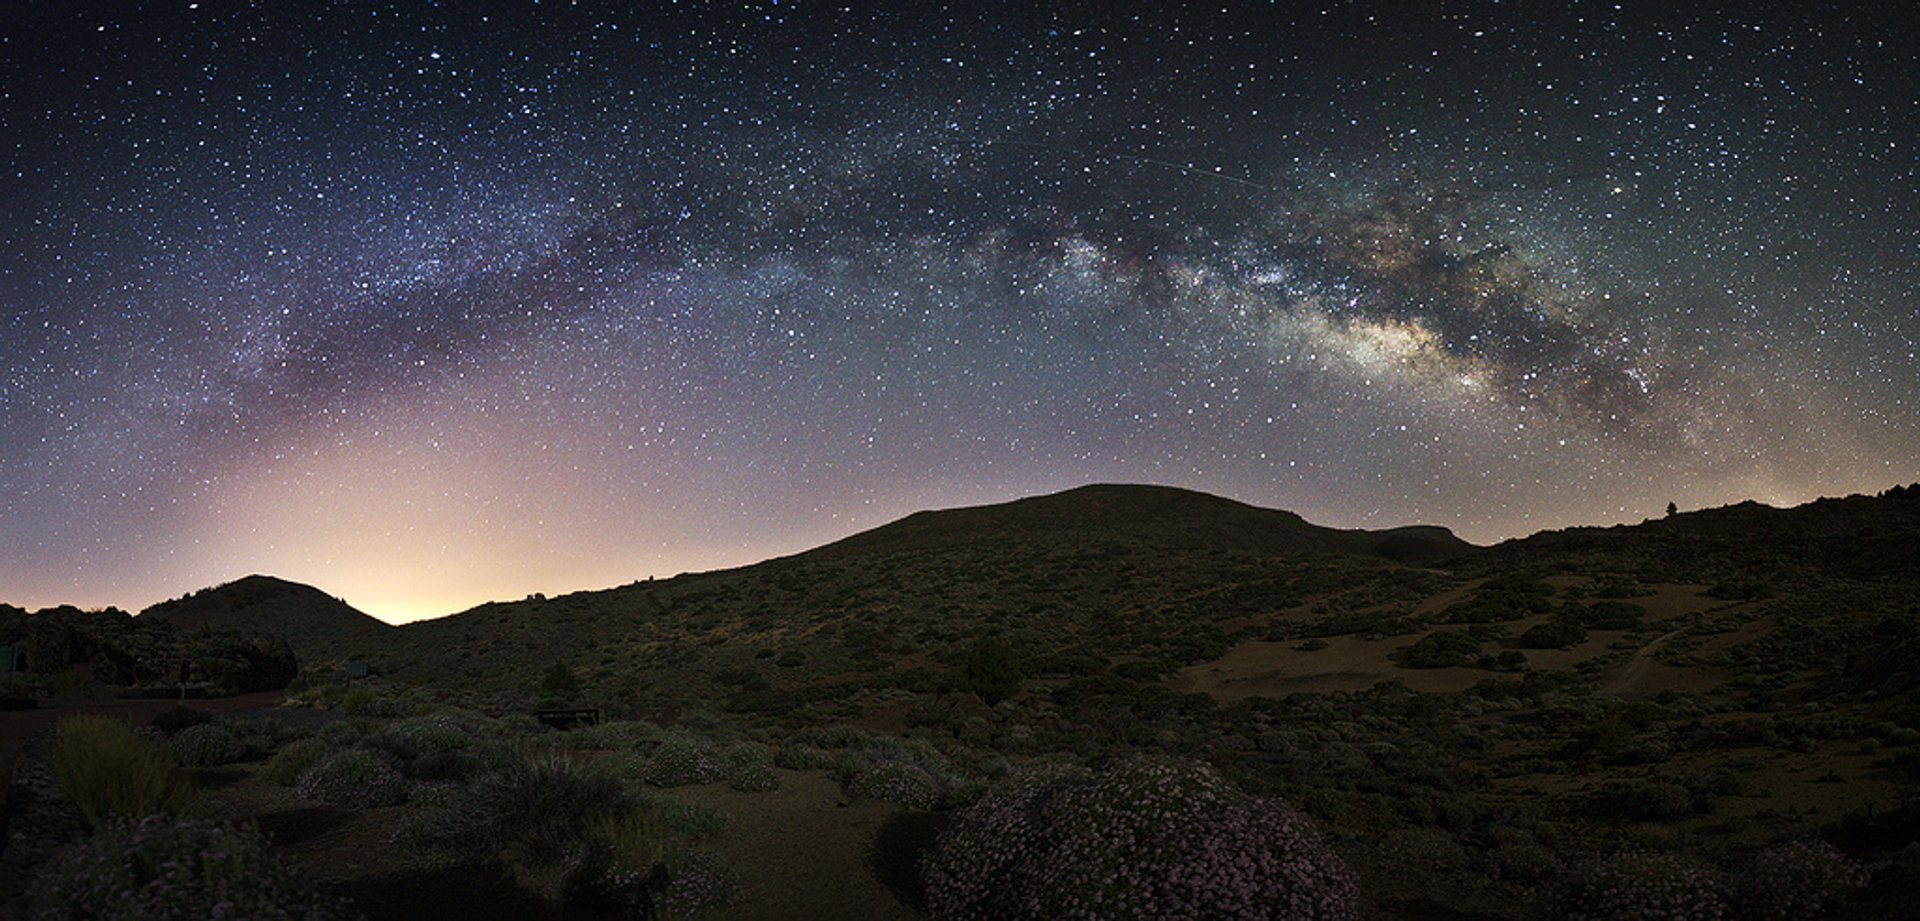 Milky Way observed from Tenerife 2019